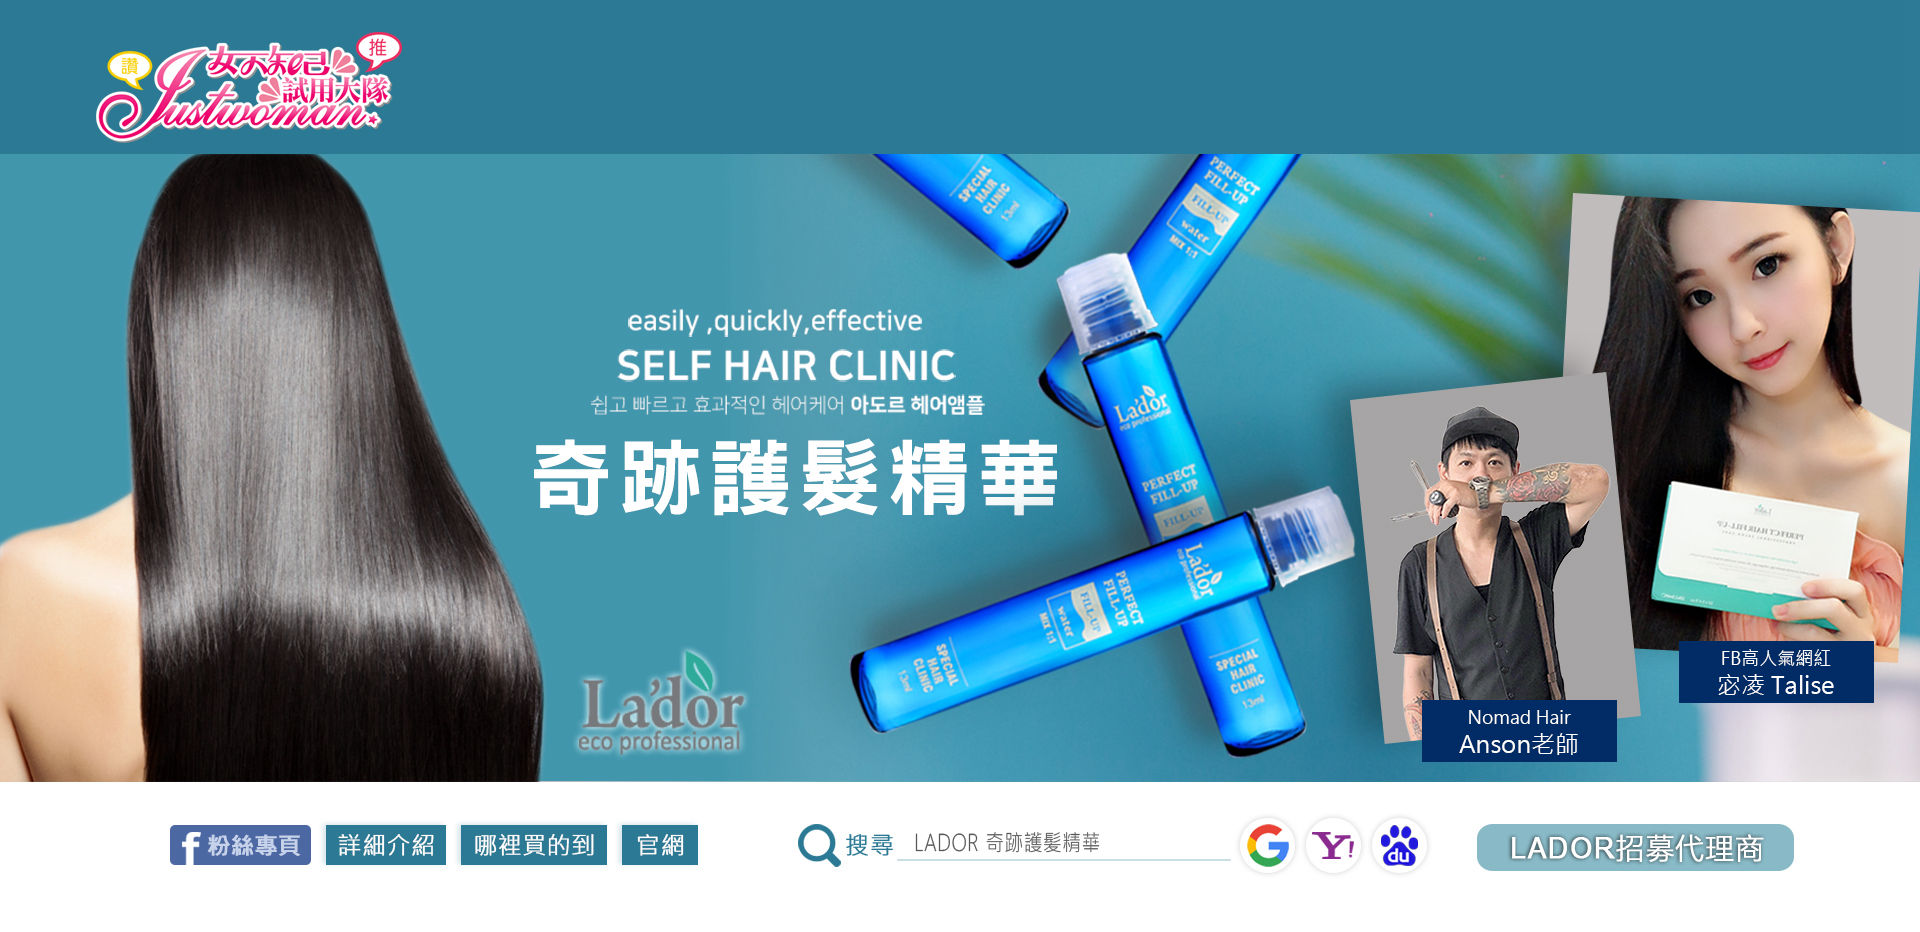 LADOR PERFECT HAIR FILL-UP奇跡護髪精華